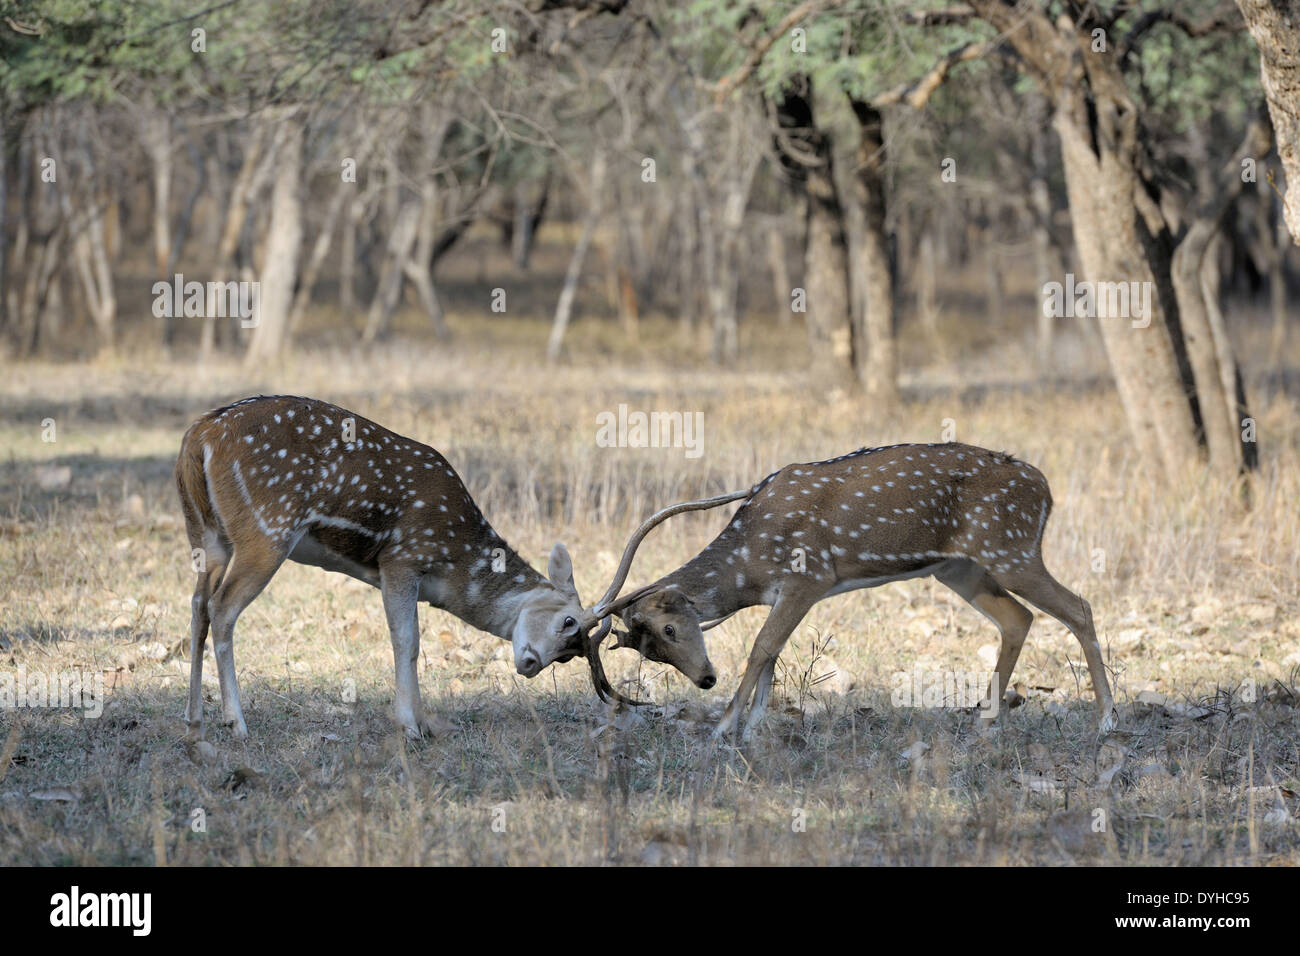 Spotted deer (Axis axis) fighting. - Stock Image